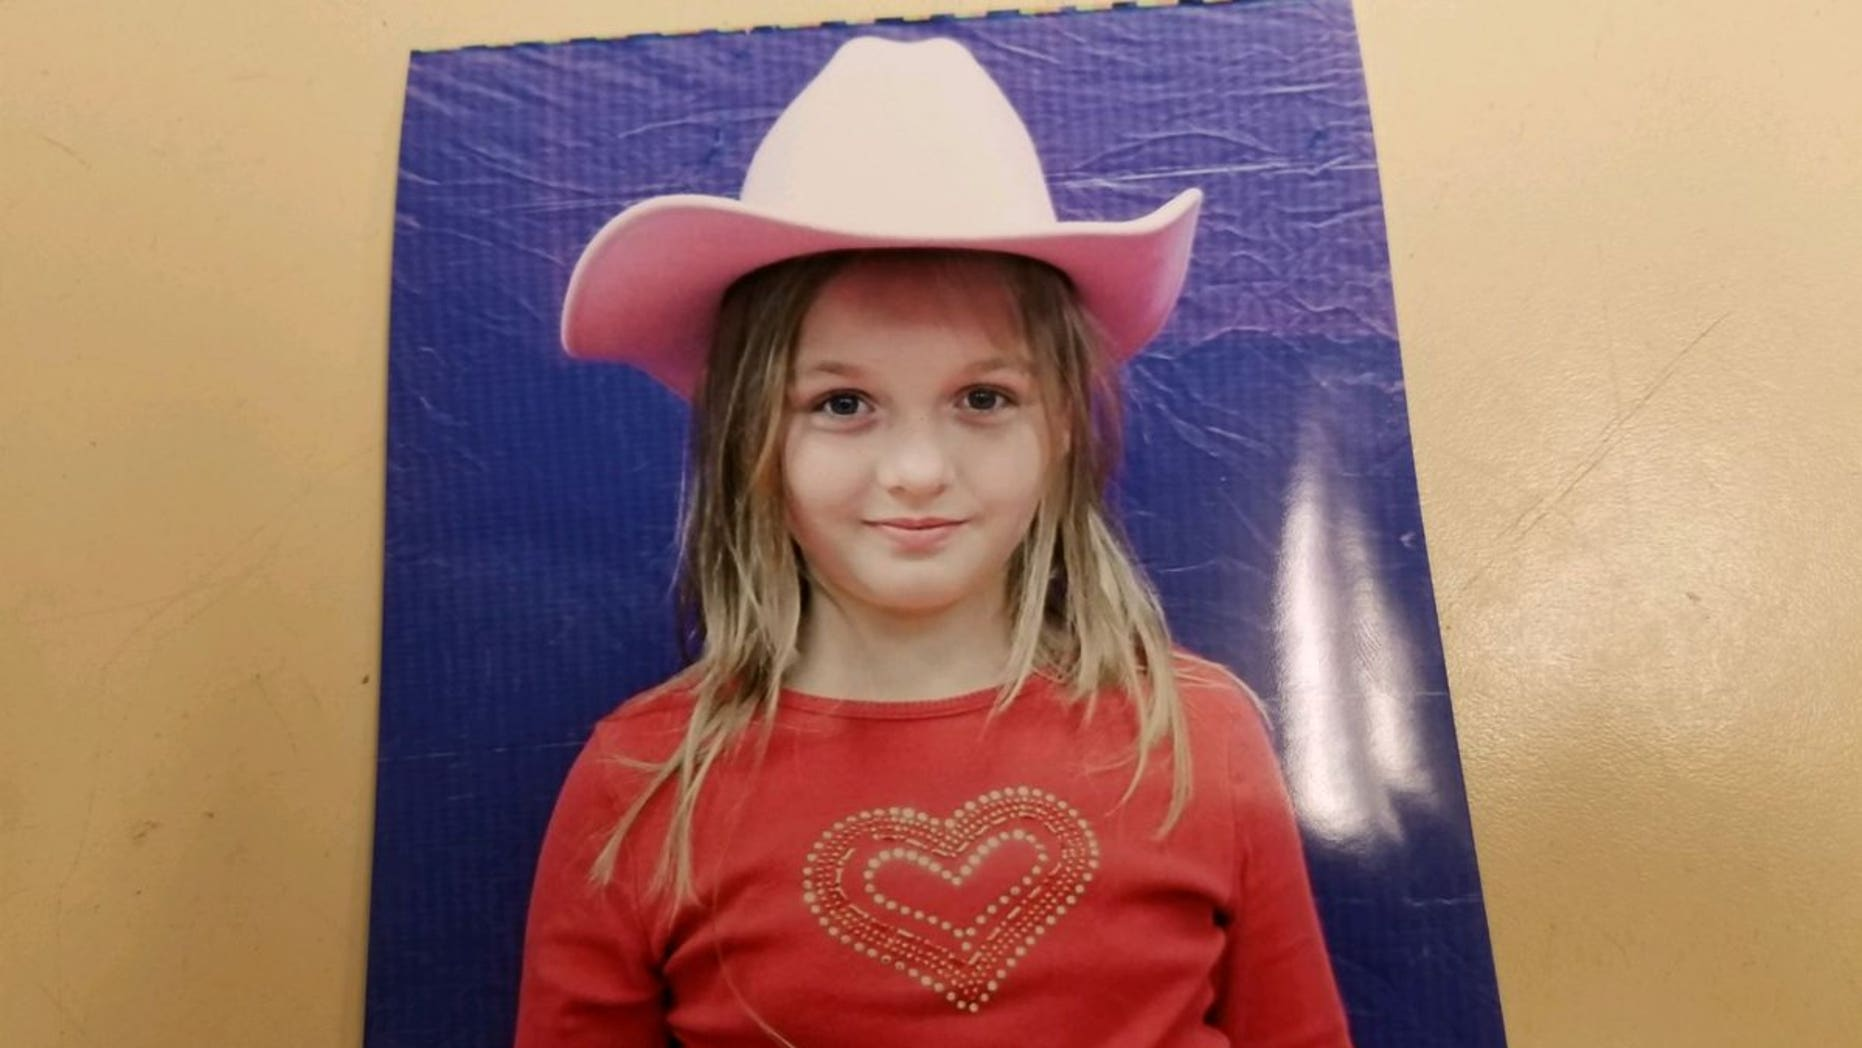 Serenity Dennard, 9, is unlikely to have left a children's home last Sunday, authorities say. (Pennington County Sheriff's Office)